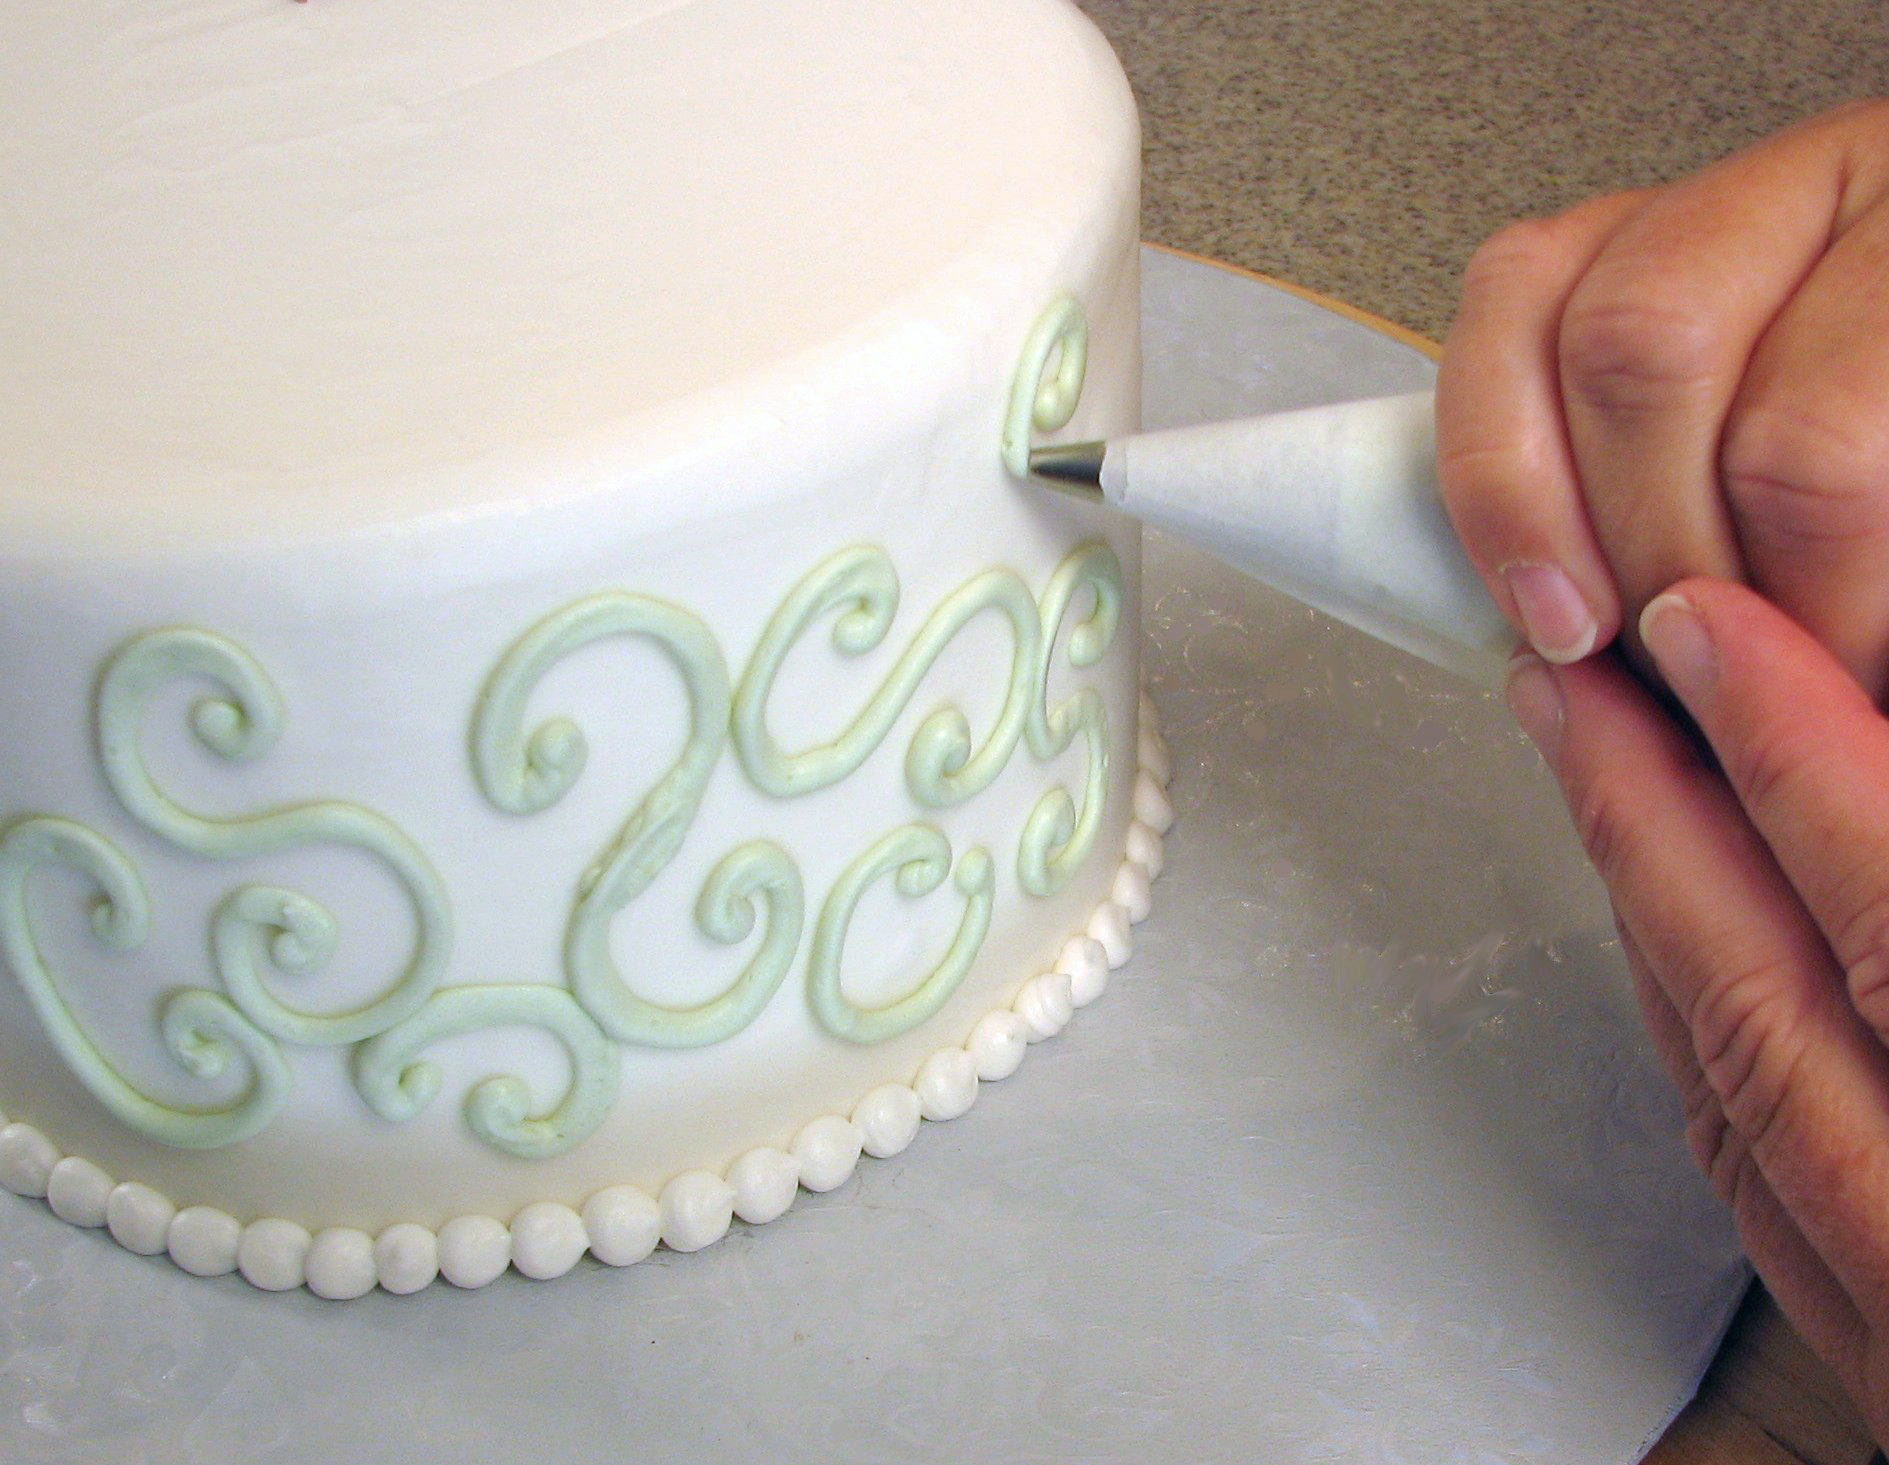 Cake Decor Without Icing : Cake decorating - Wikipedia